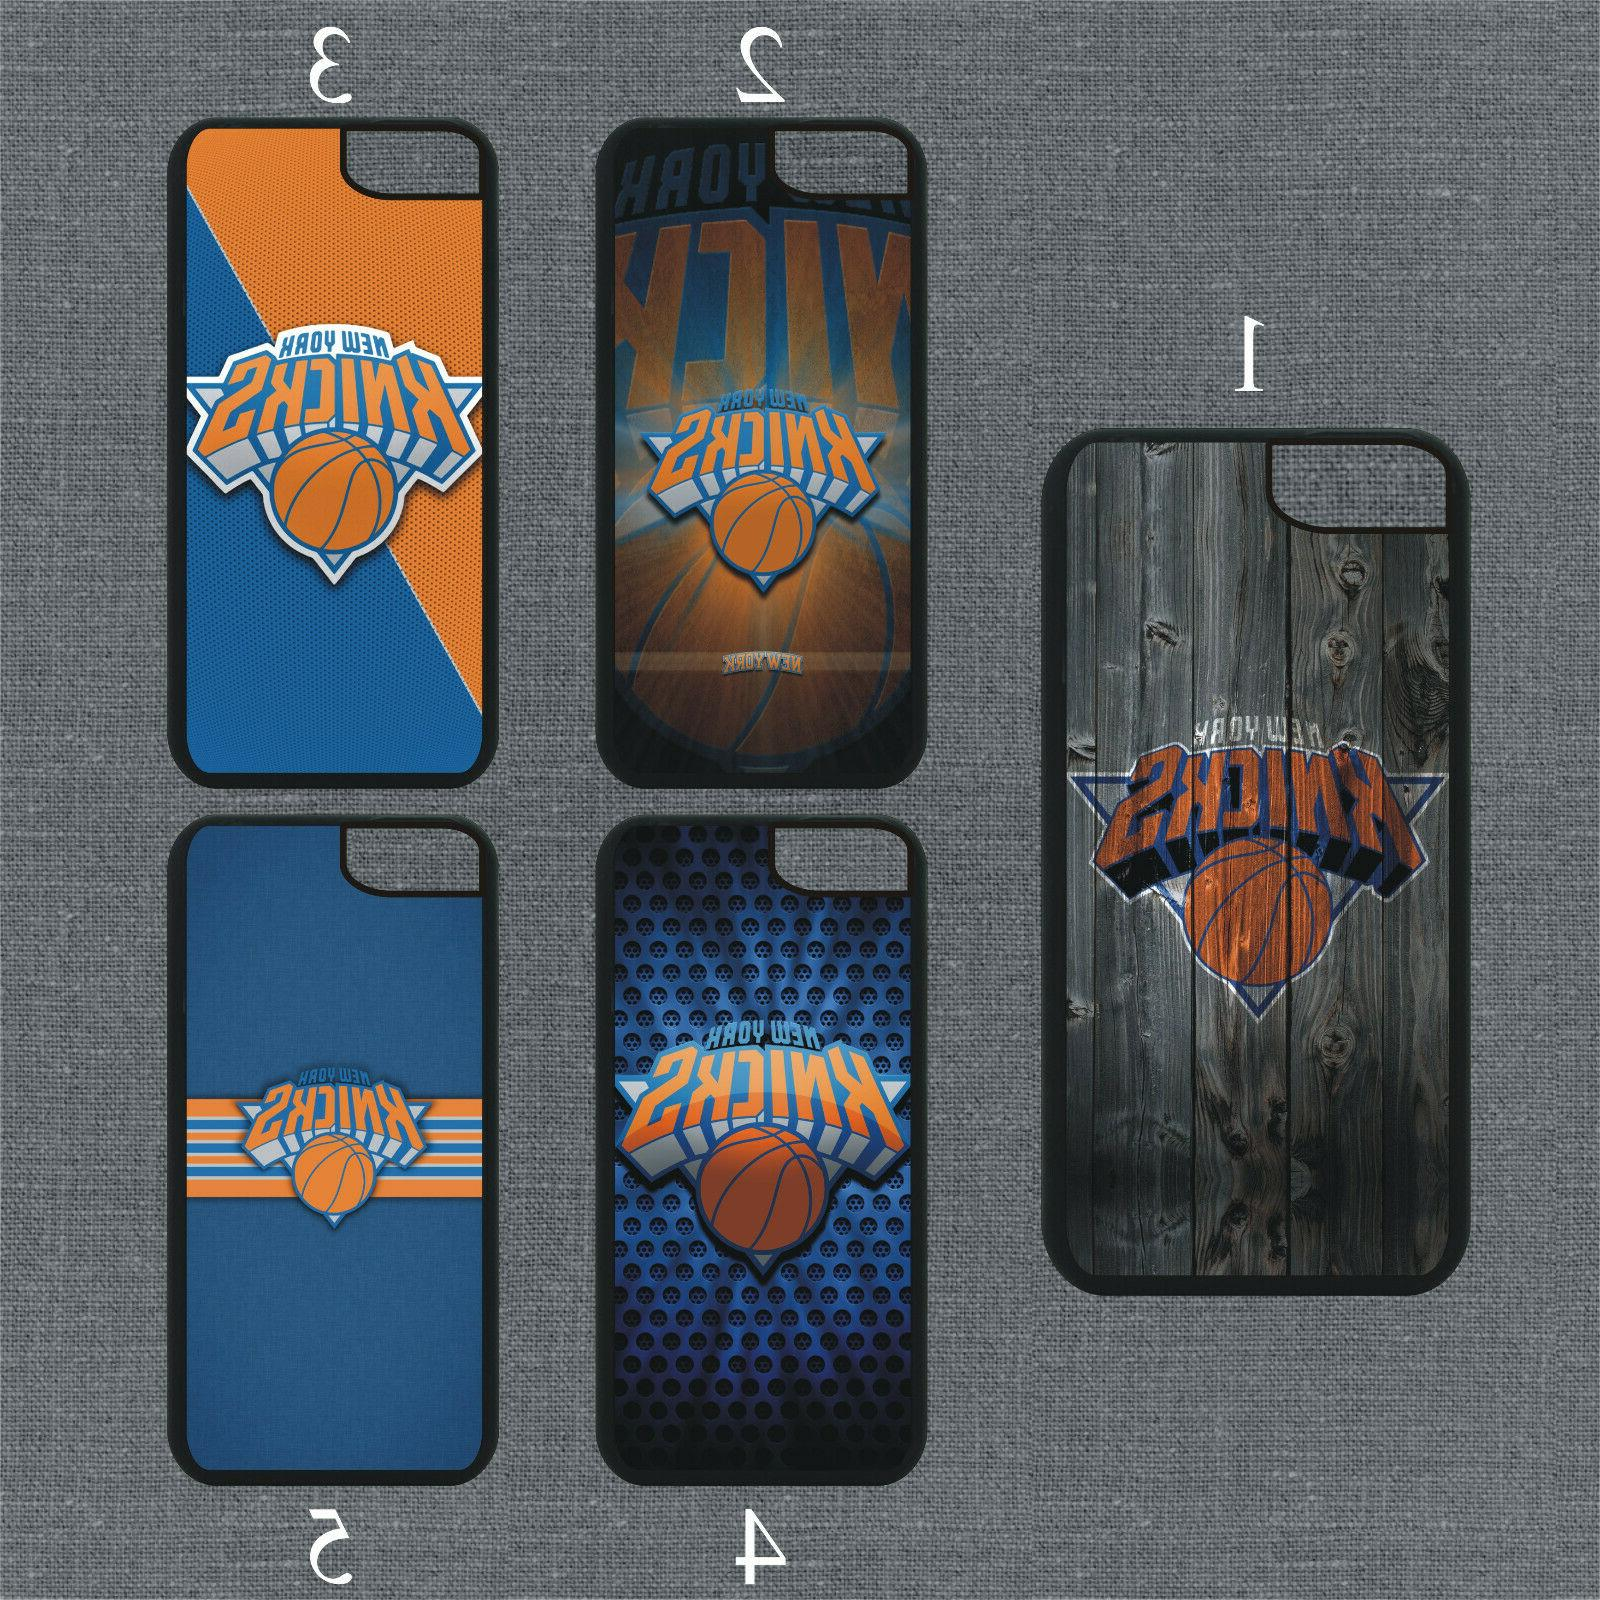 new york knicks phone case for iphone